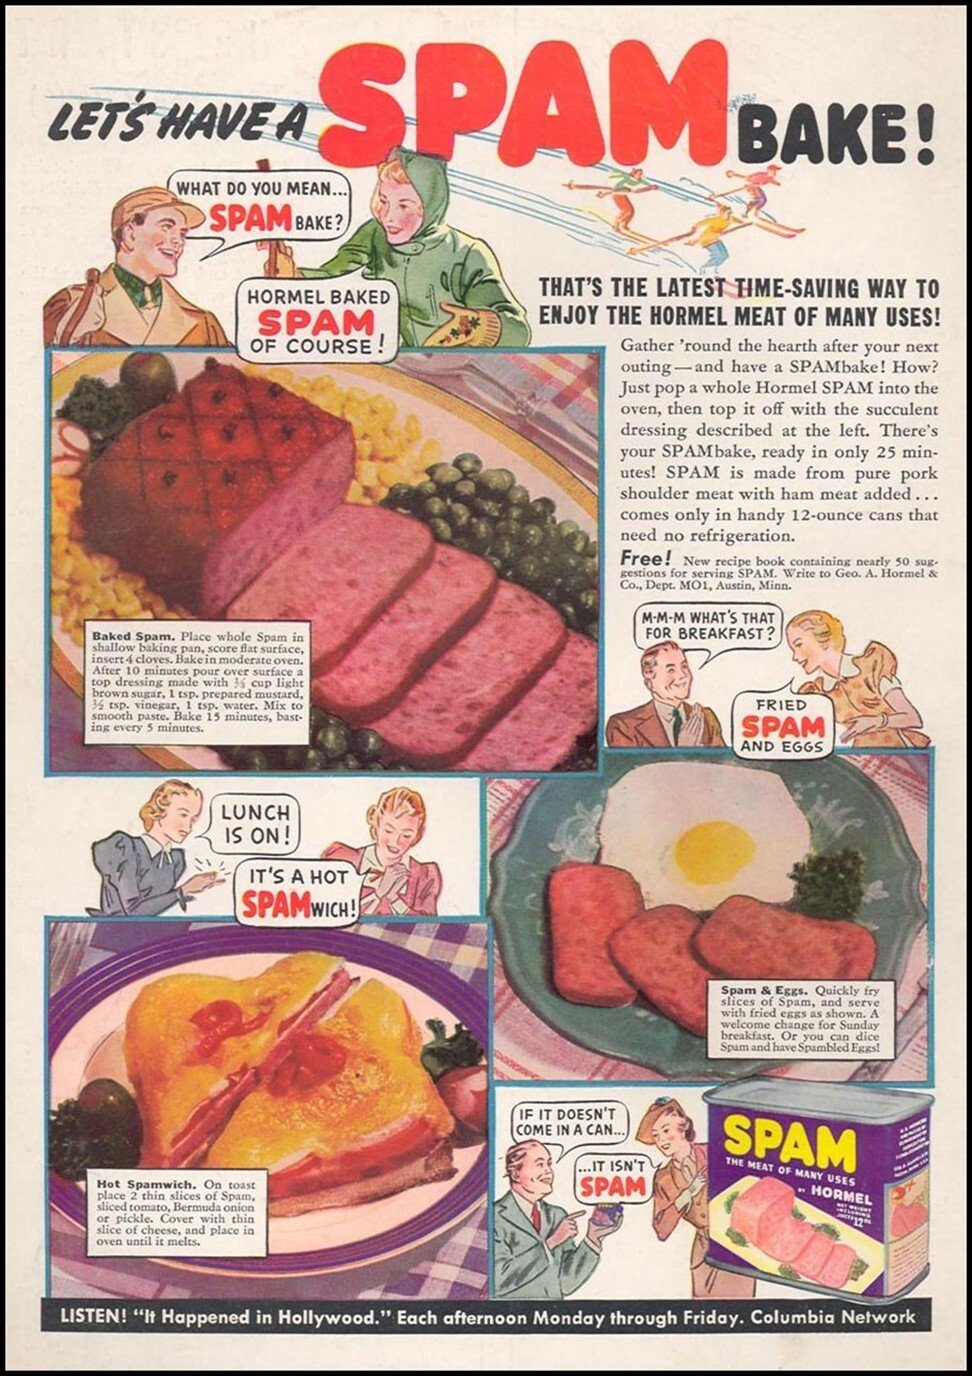 Versatility was a major selling point when Spam first hit the shelves 80 years ago.